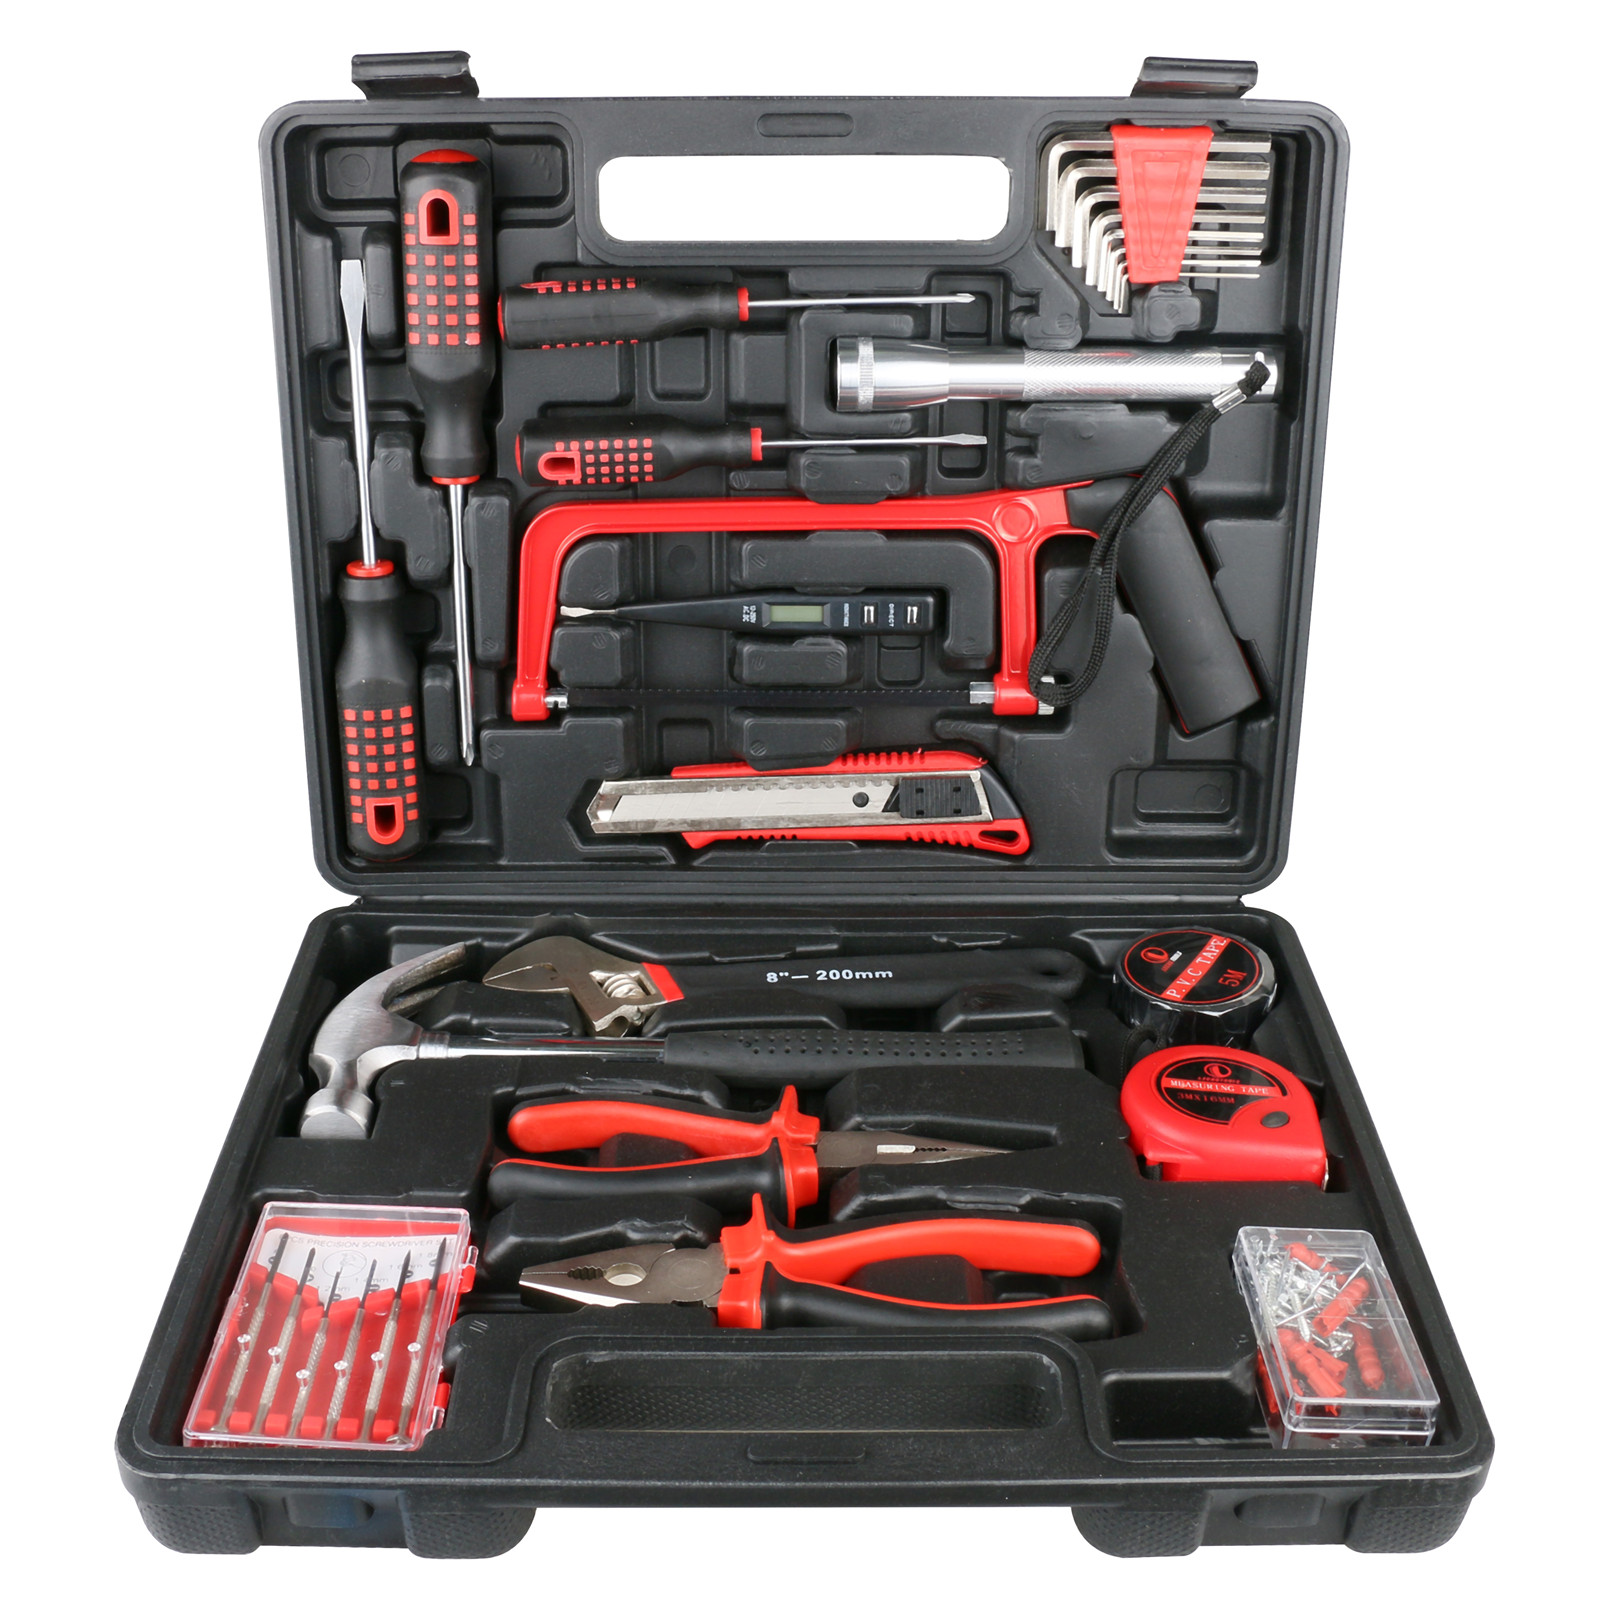 32 pieces of automobile emergency tools, pliers, wrenches, screwdrivers, straightedge hammers.